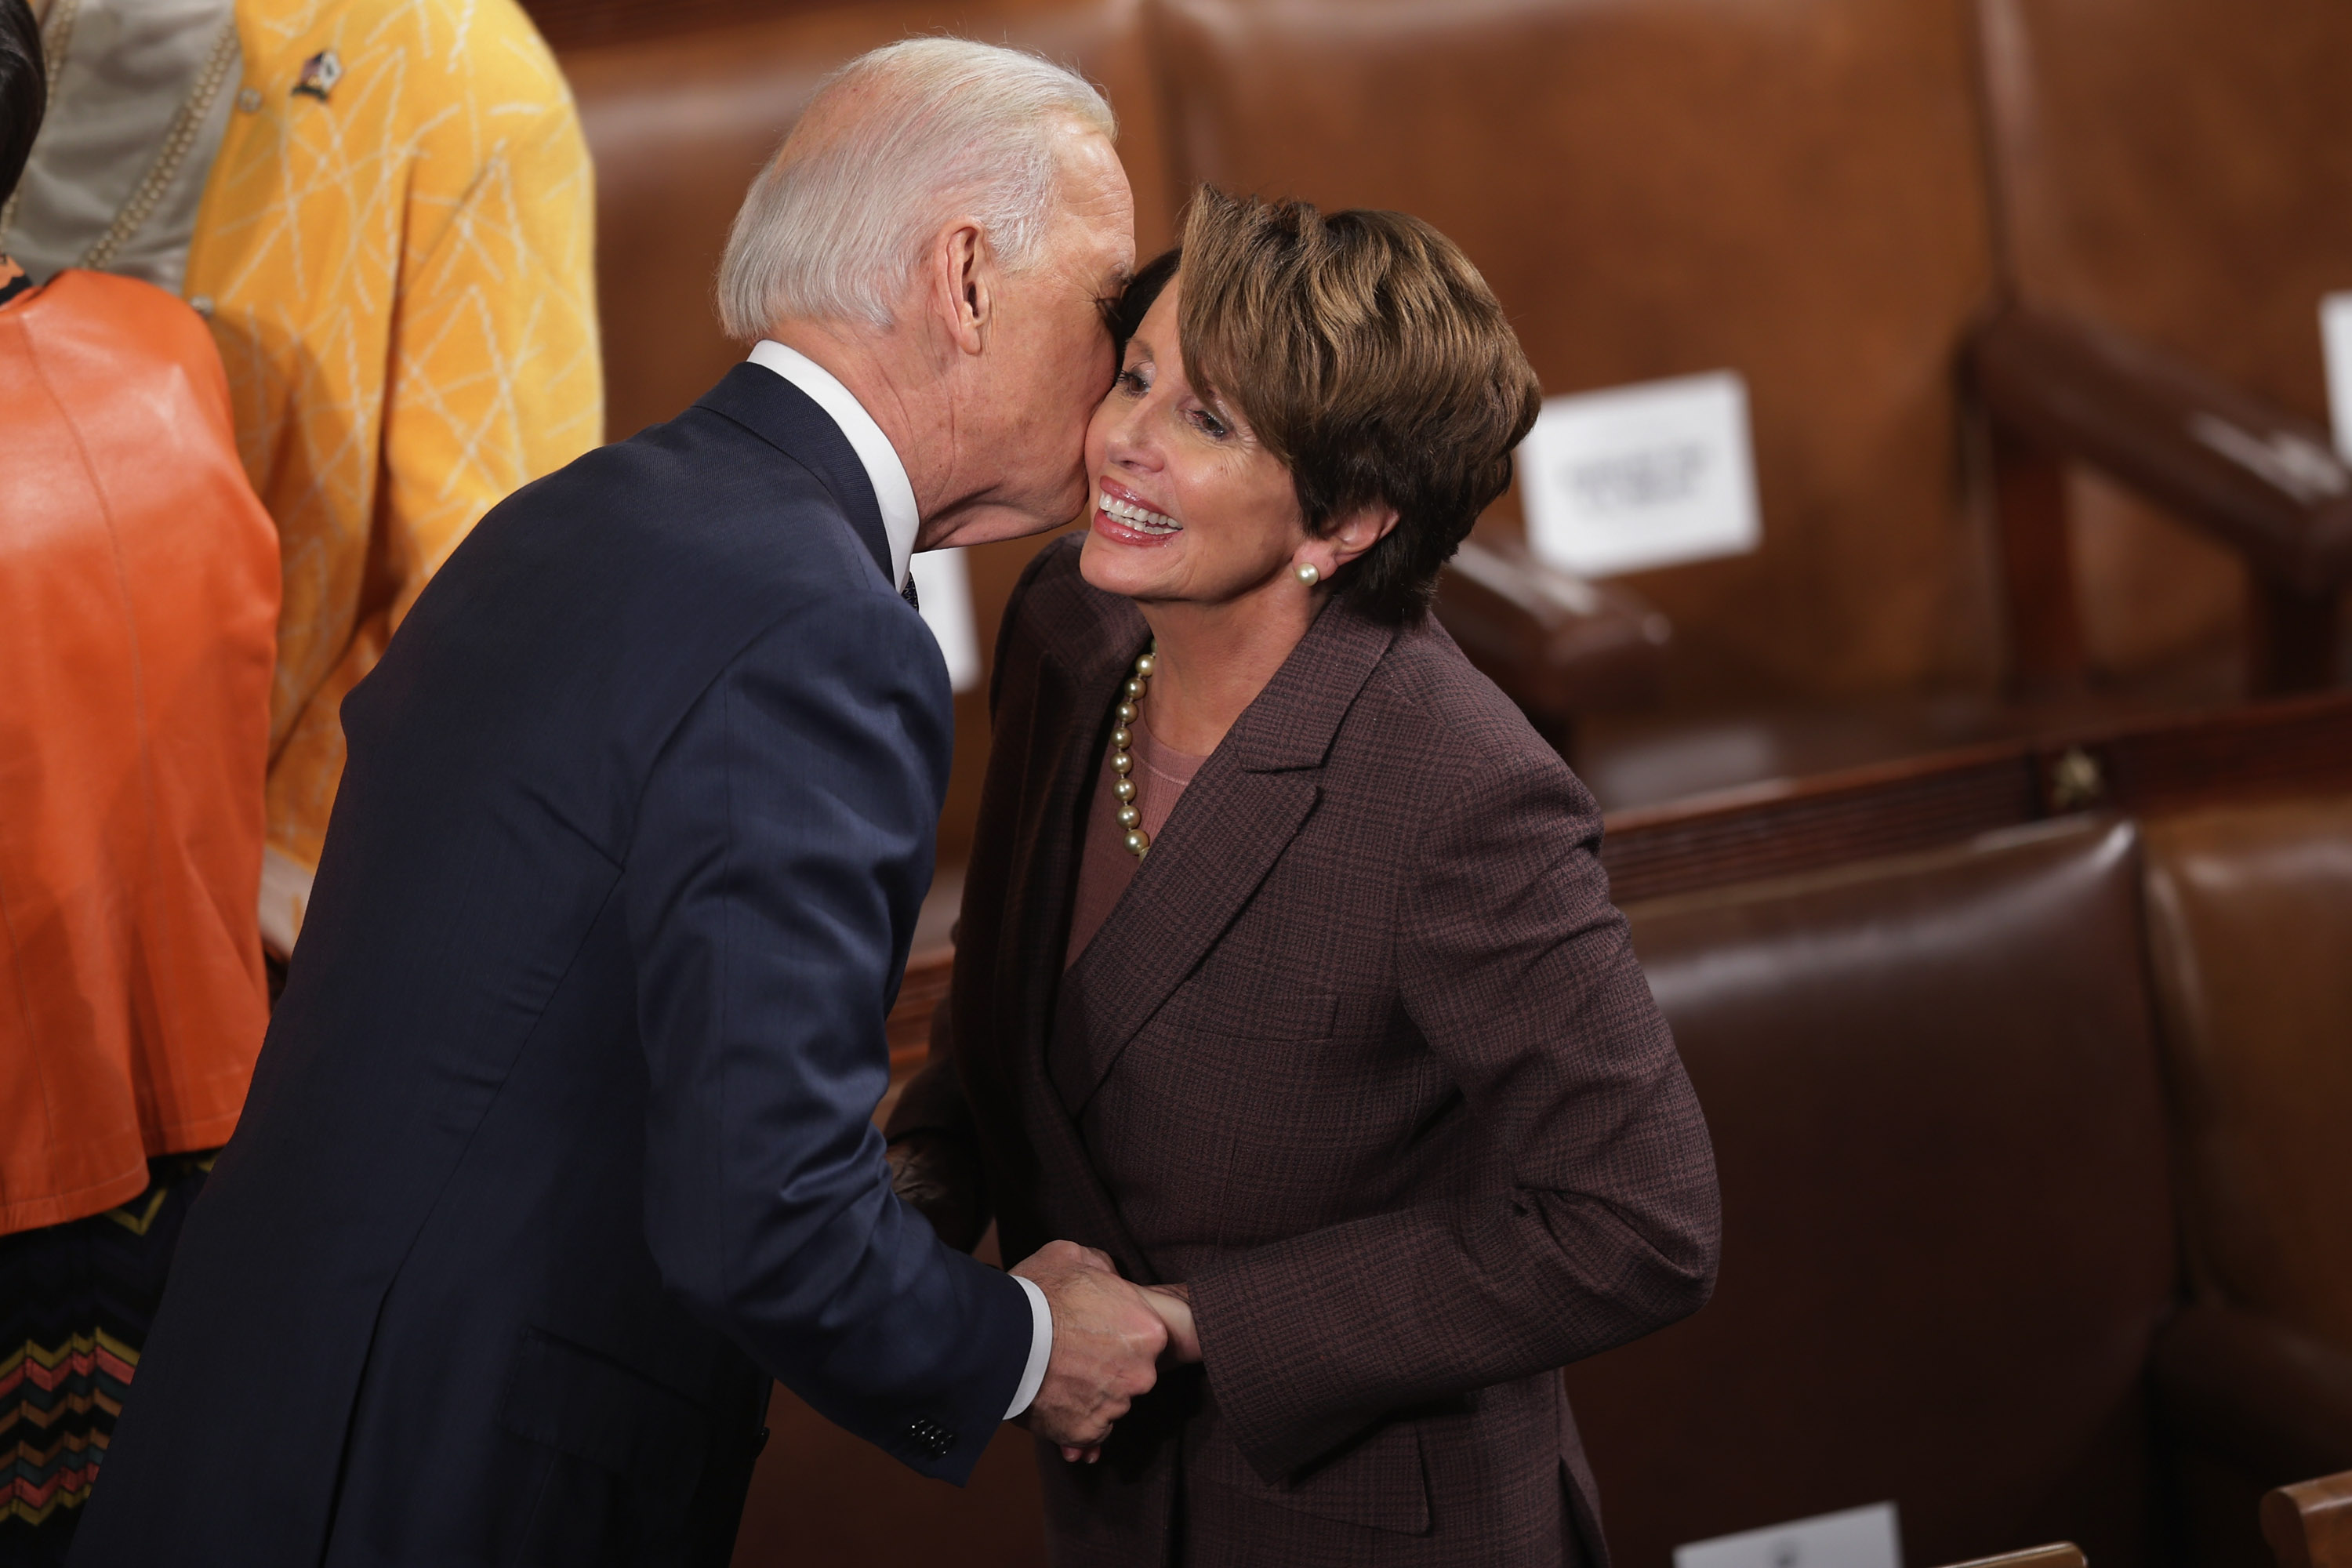 WASHINGTON, DC - JANUARY 28: Vice President Joe Biden (L) kisses House Minority Leader Nancy Pelosi (D-CA) before U.S. President Barack Obama delivers the State of the Union address to a joint session of Congress in the House Chamber at the U.S. Capitol on January 28, 2014 in Washington, DC. In his fifth State of the Union address, Obama is expected to emphasize on healthcare, economic fairness and new initiatives designed to stimulate the U.S. economy with bipartisan cooperation. (Photo by Chip Somodevilla/Getty Images)